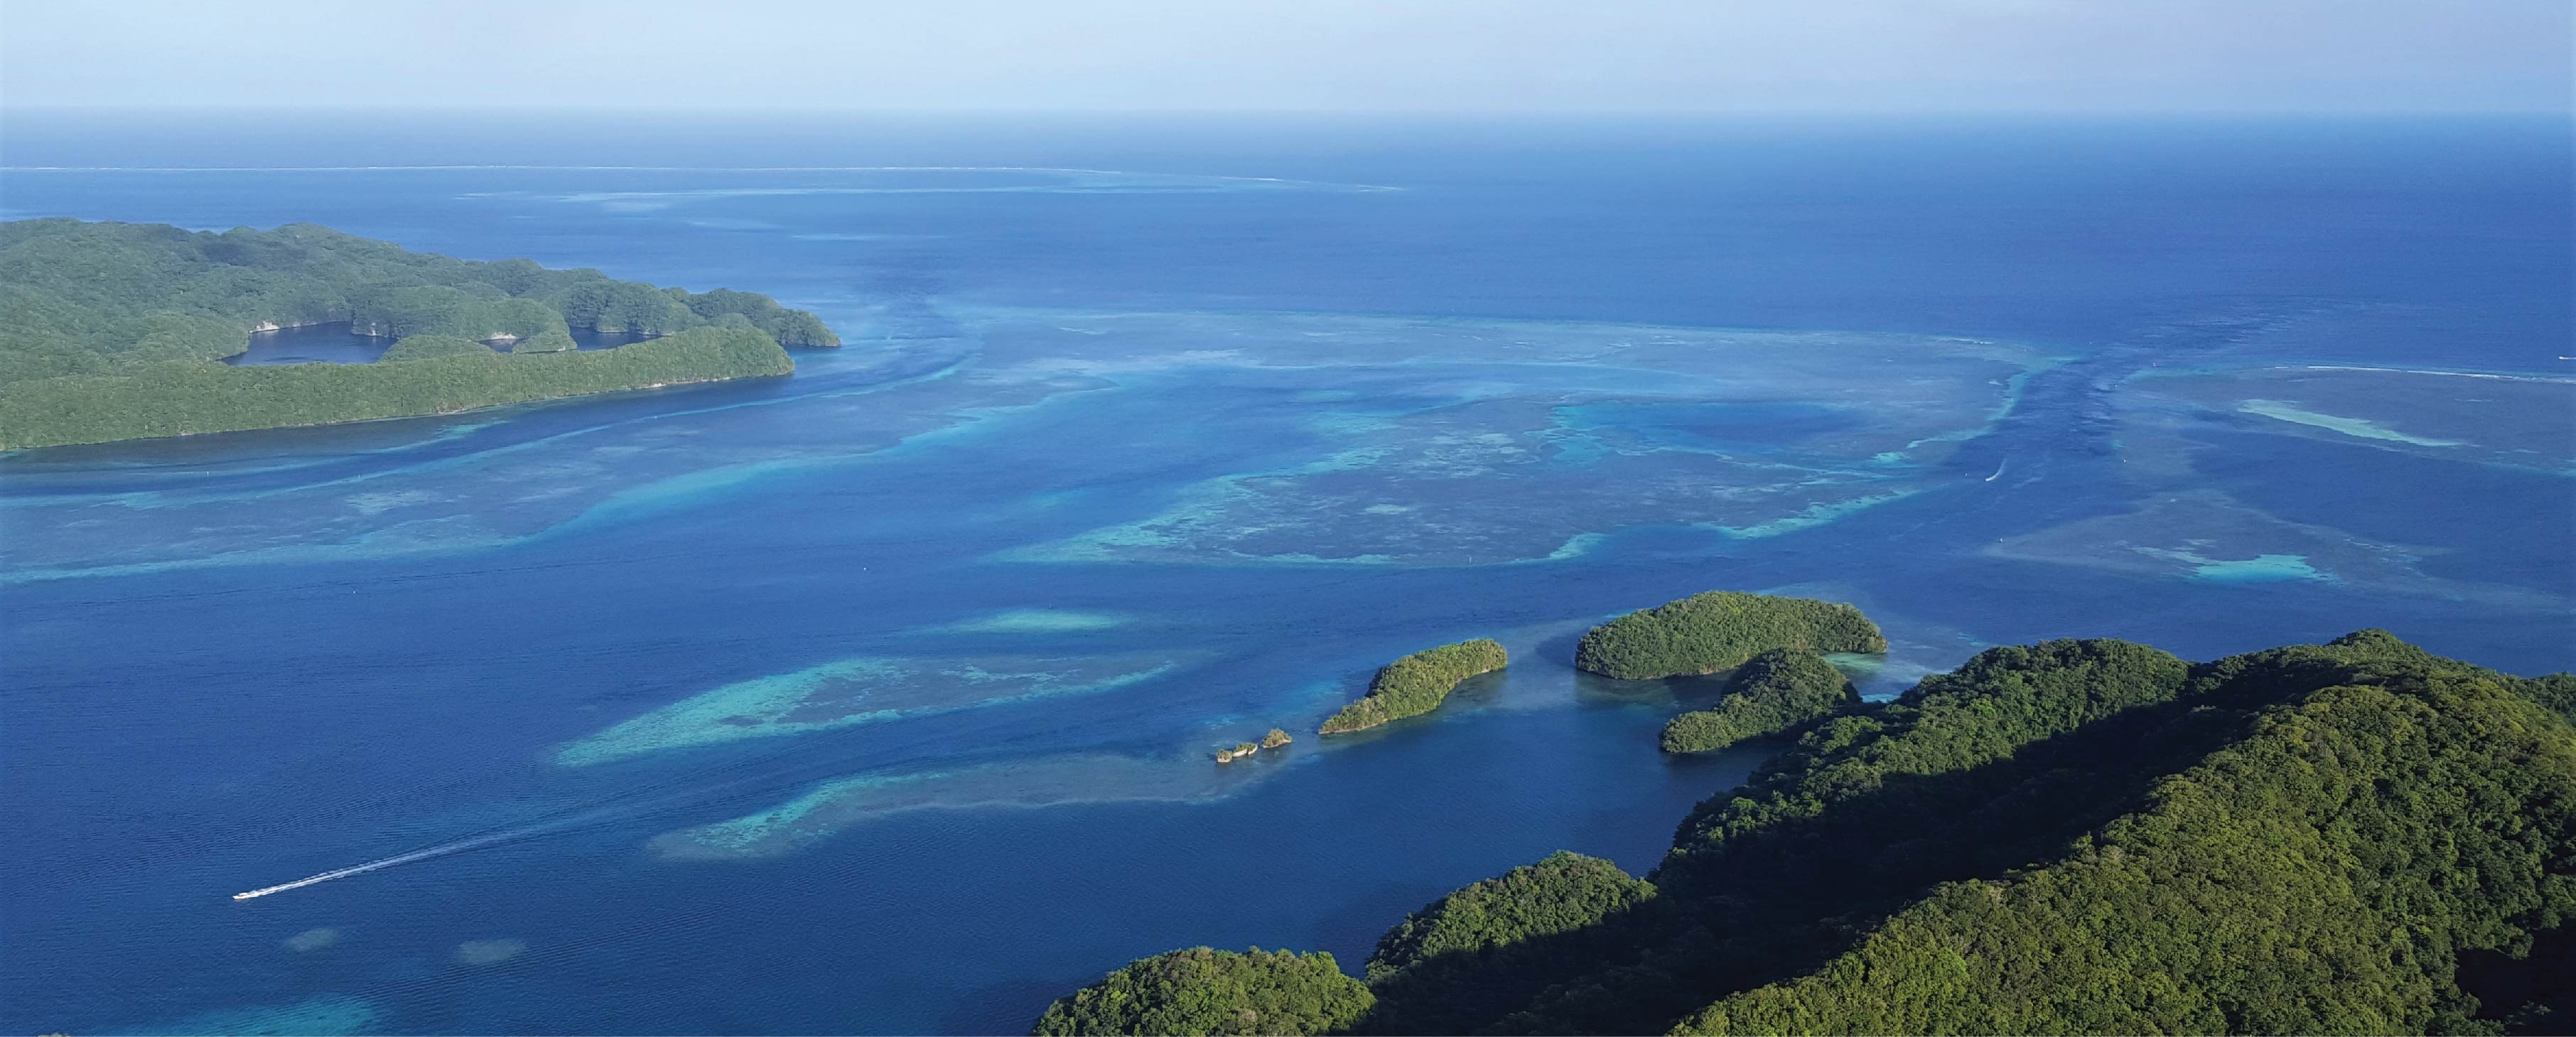 Ngederrak Reef, a marine protected area adjacent to the main harbor of Palau.  Photo: Travis Schramek